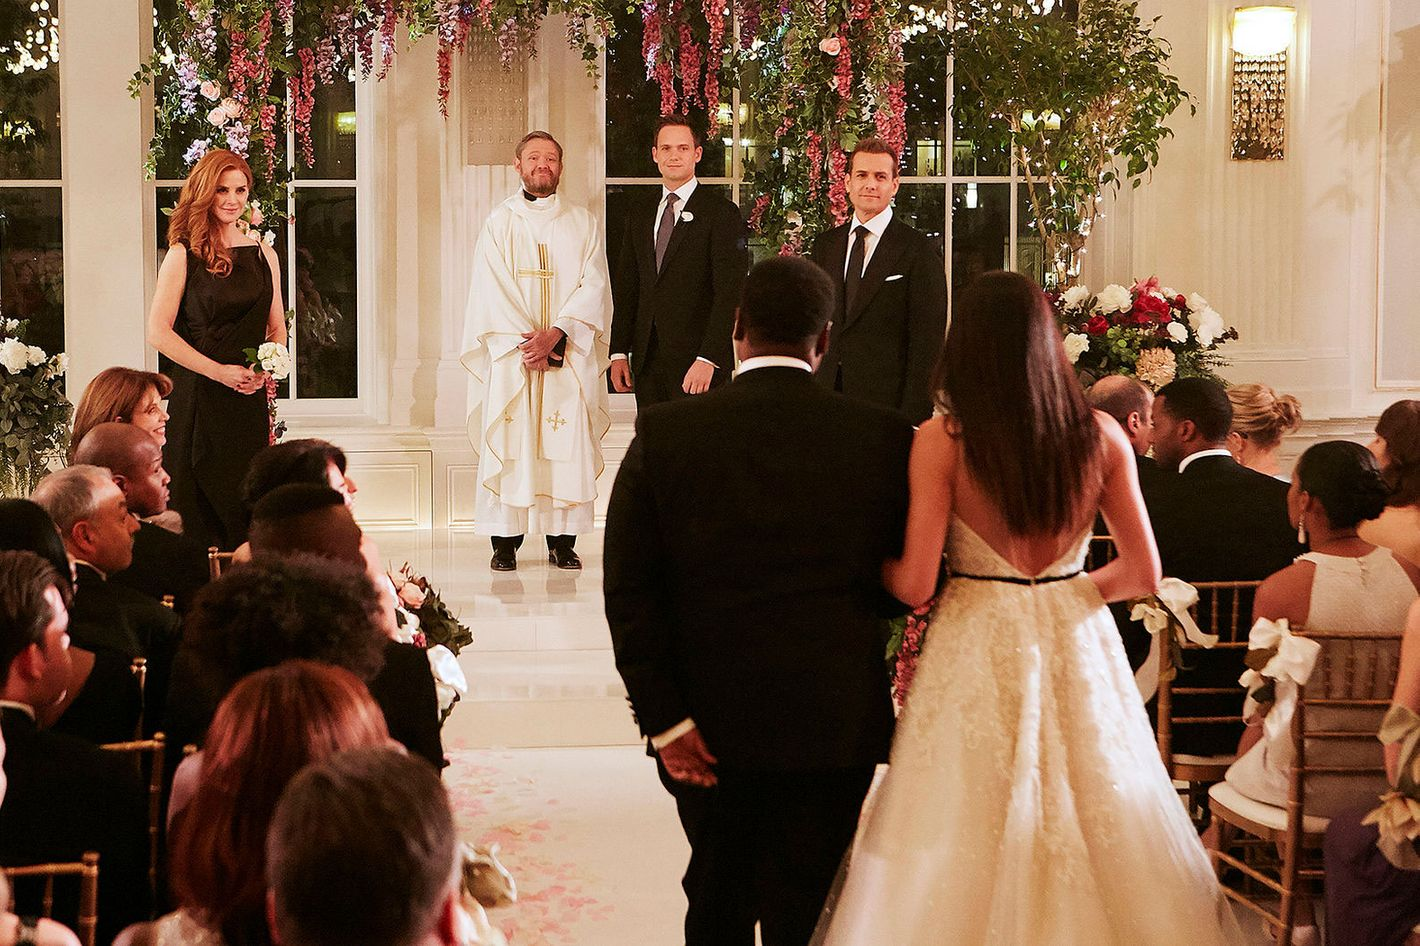 The network got photos from the wedding of Kostenko and Tarasov 01/09/2018